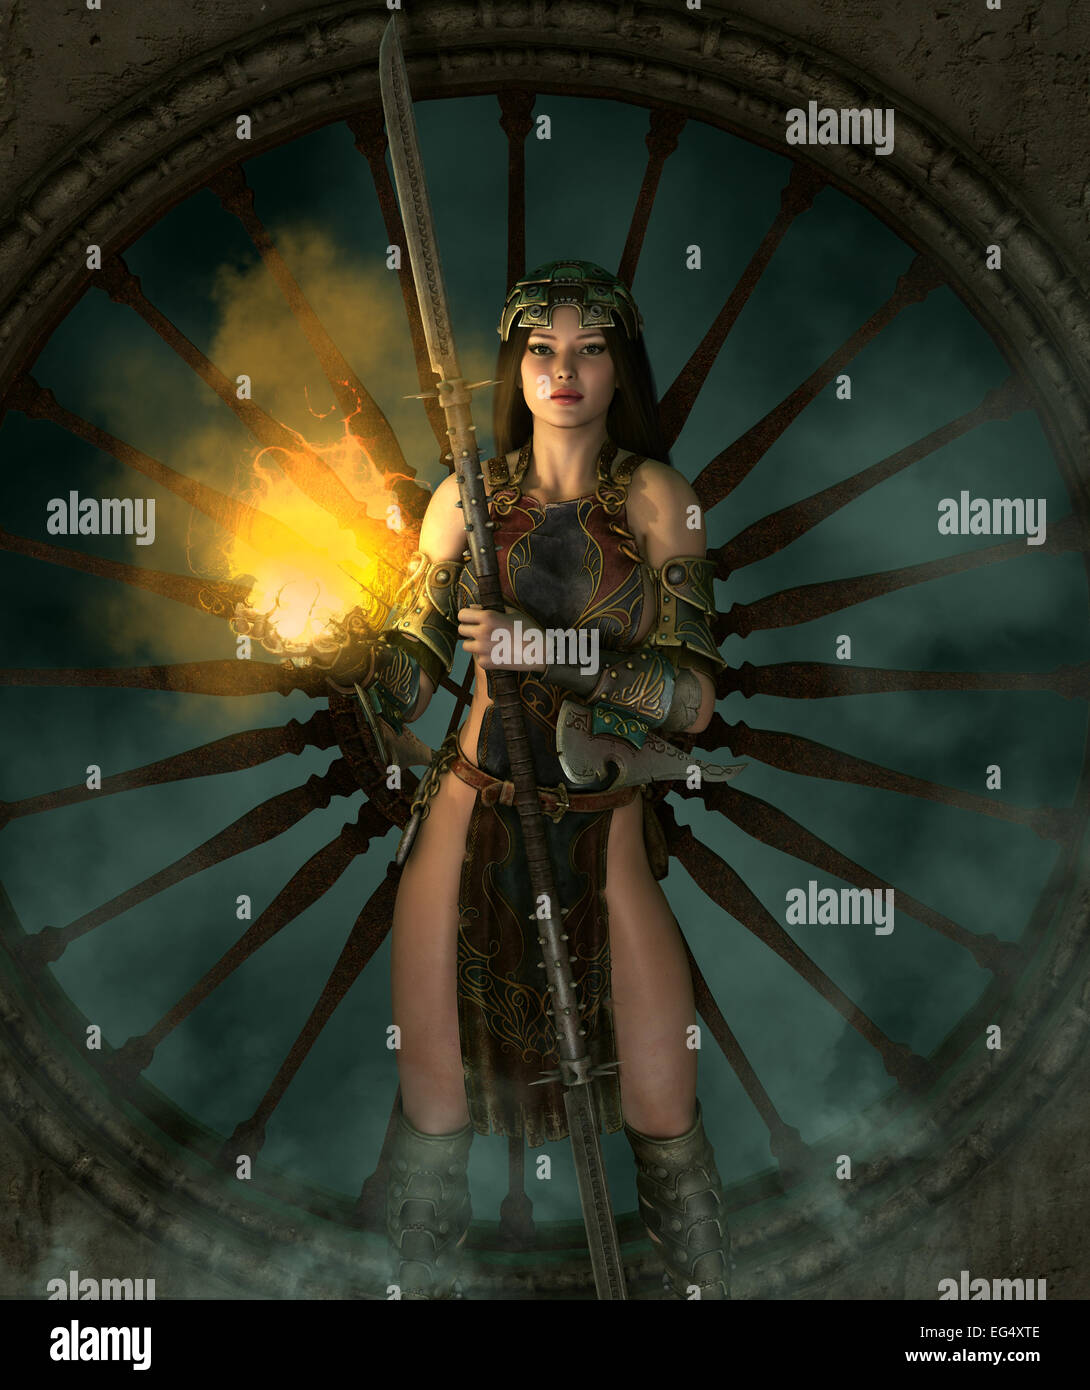 3d computer graphics of a young woman with a fantasy outfit and a weapon - Stock Image